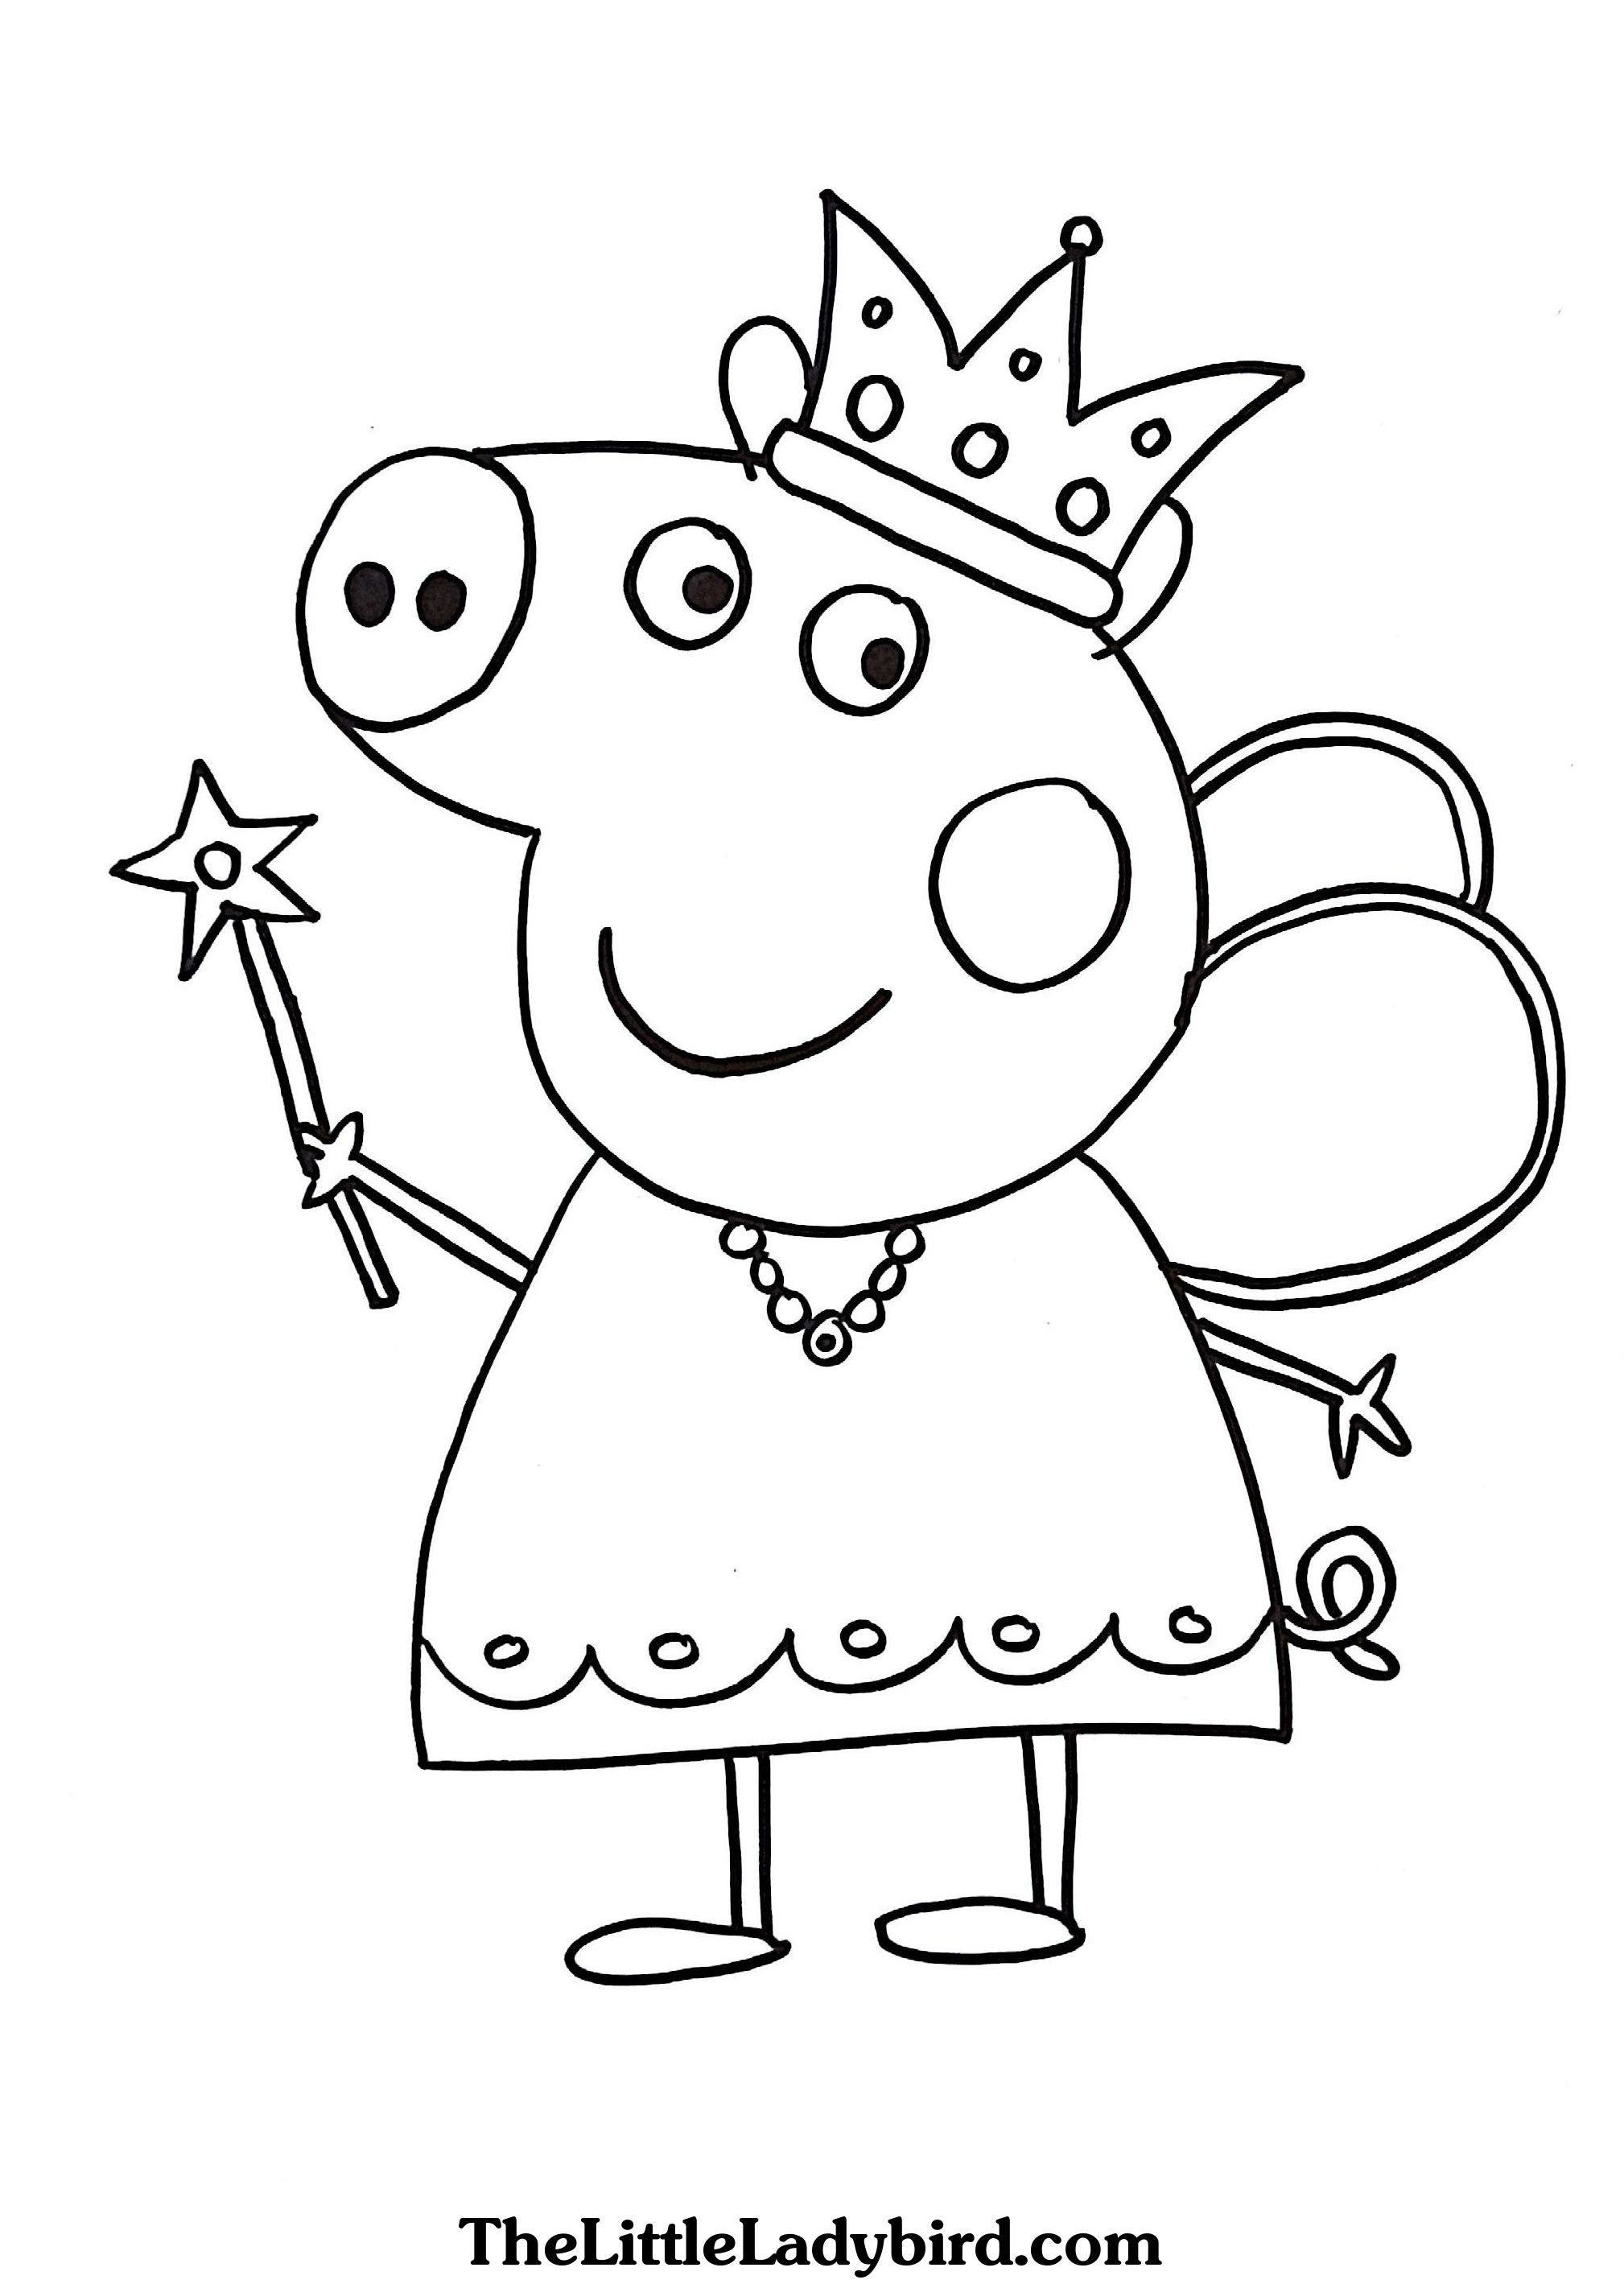 Peppa Pig Queen Coloring Pages In 2020 Peppa Pig Coloring Pages